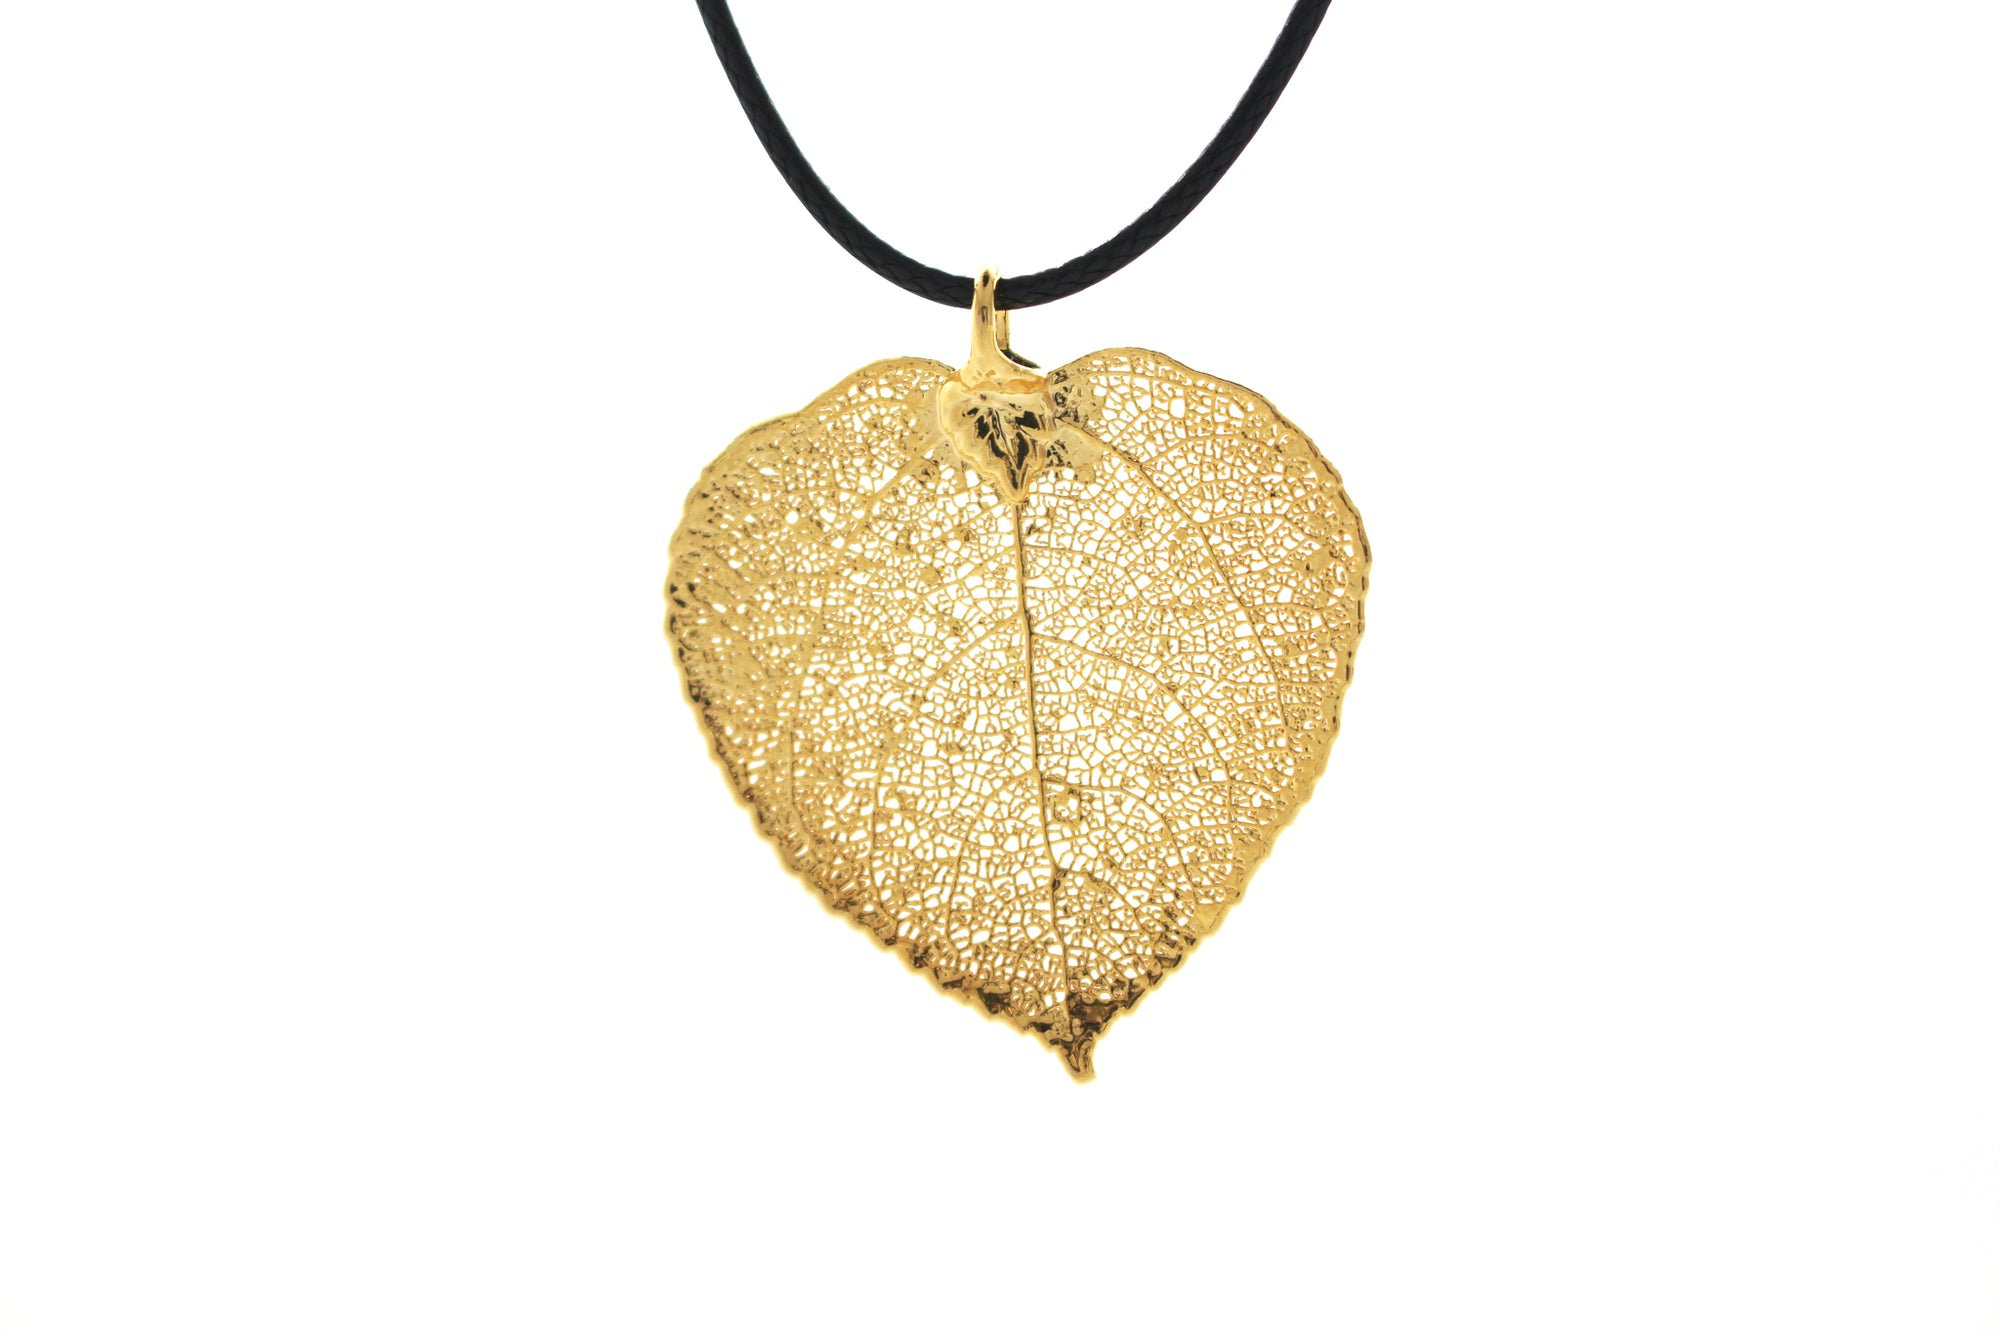 Real Aspen Leaf Necklace In Gold - Black Cord